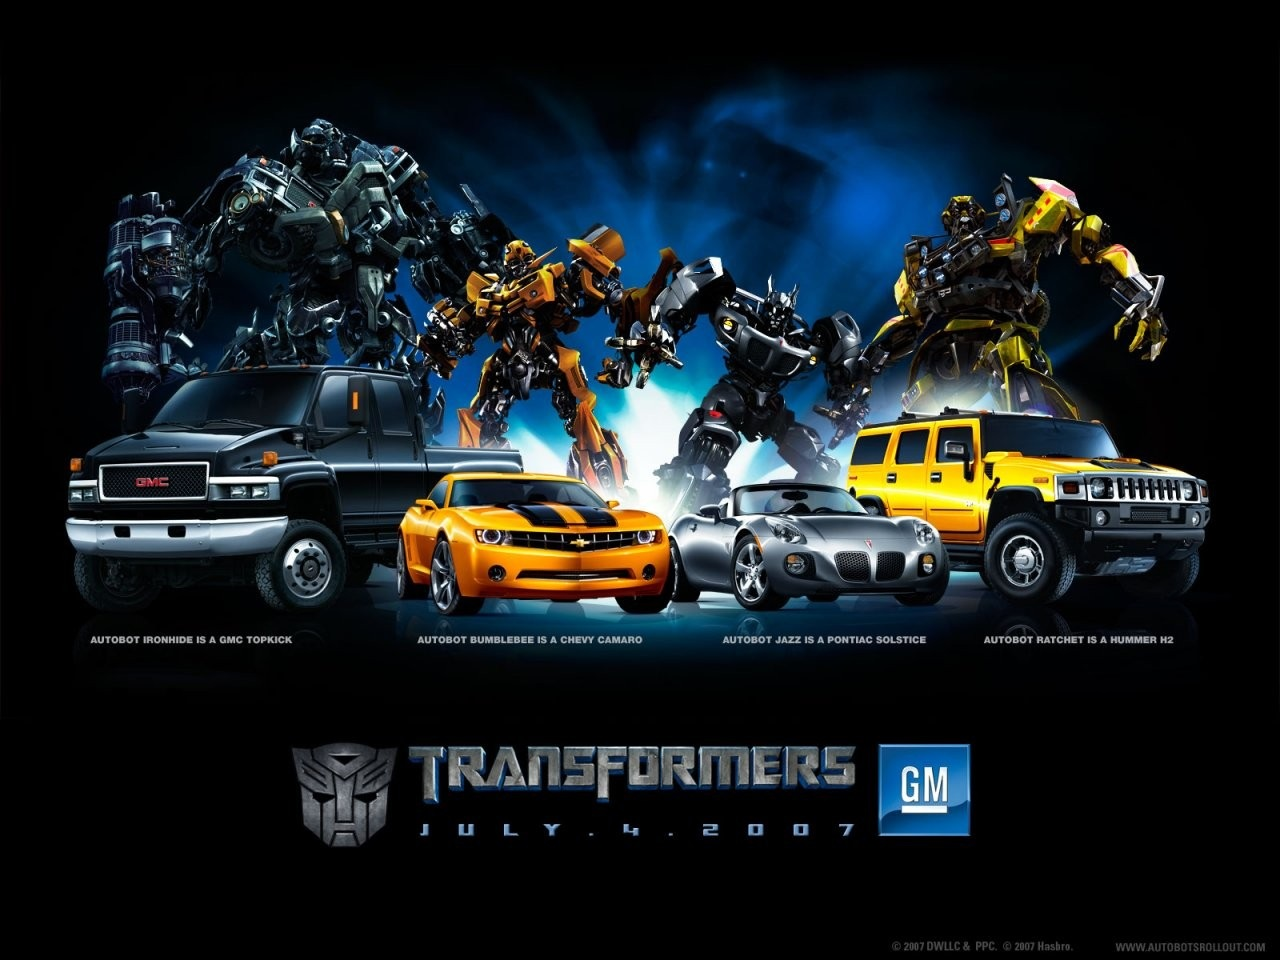 Transformers images Autobots Wallpaper HD wallpaper and background 1280x960